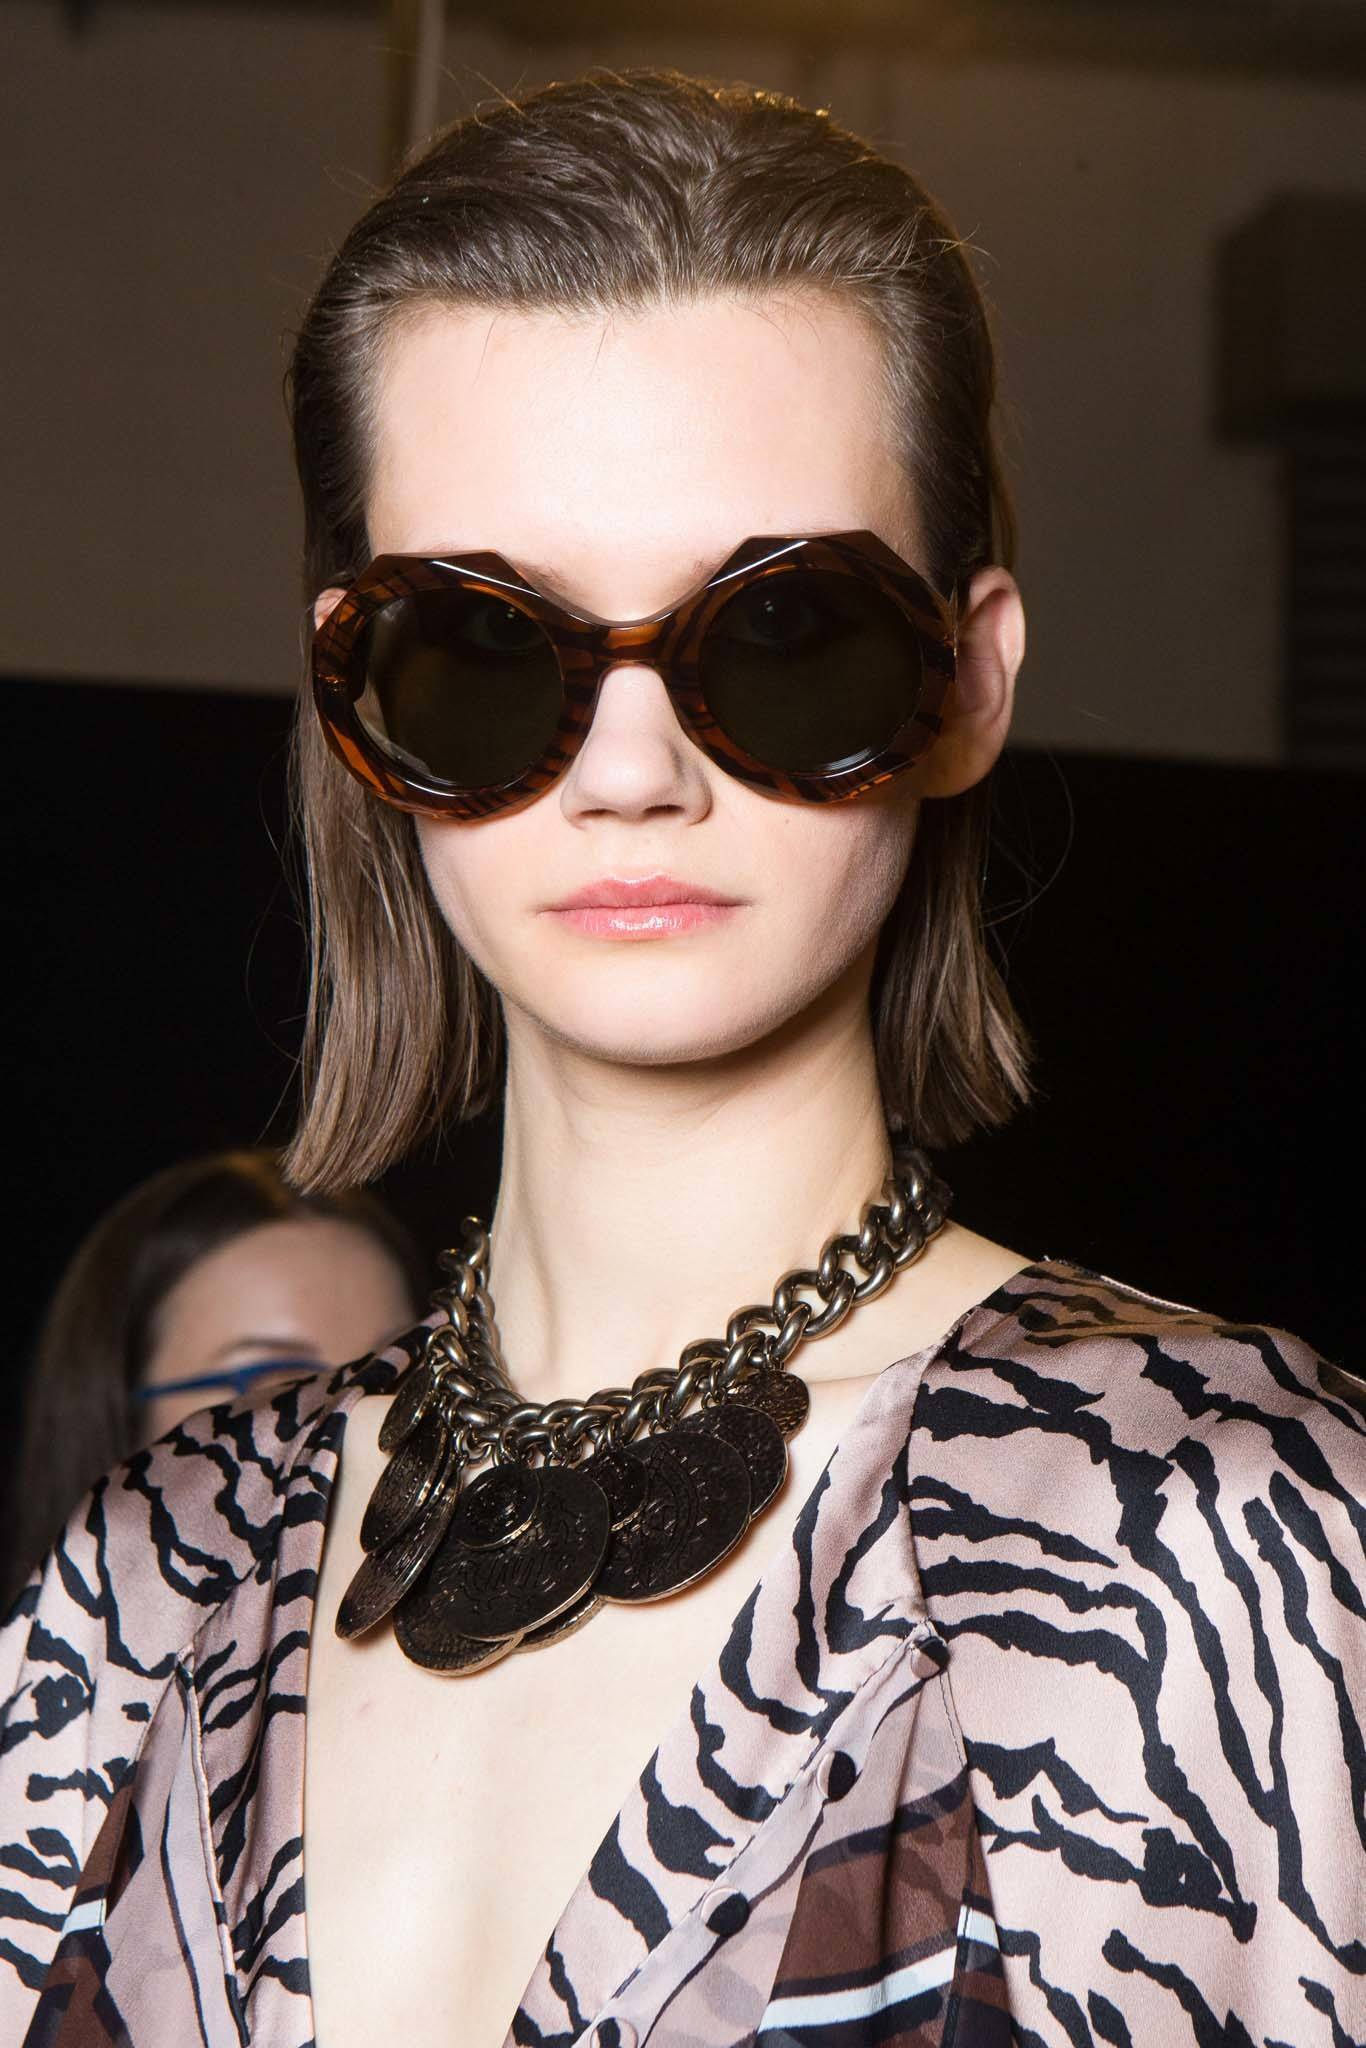 Christmas hairstyles: Model with short brown straight hair, styled swept back wearing large dark sunglasses and animal print top and large necklace at Roberto Cavalli FW18 show.